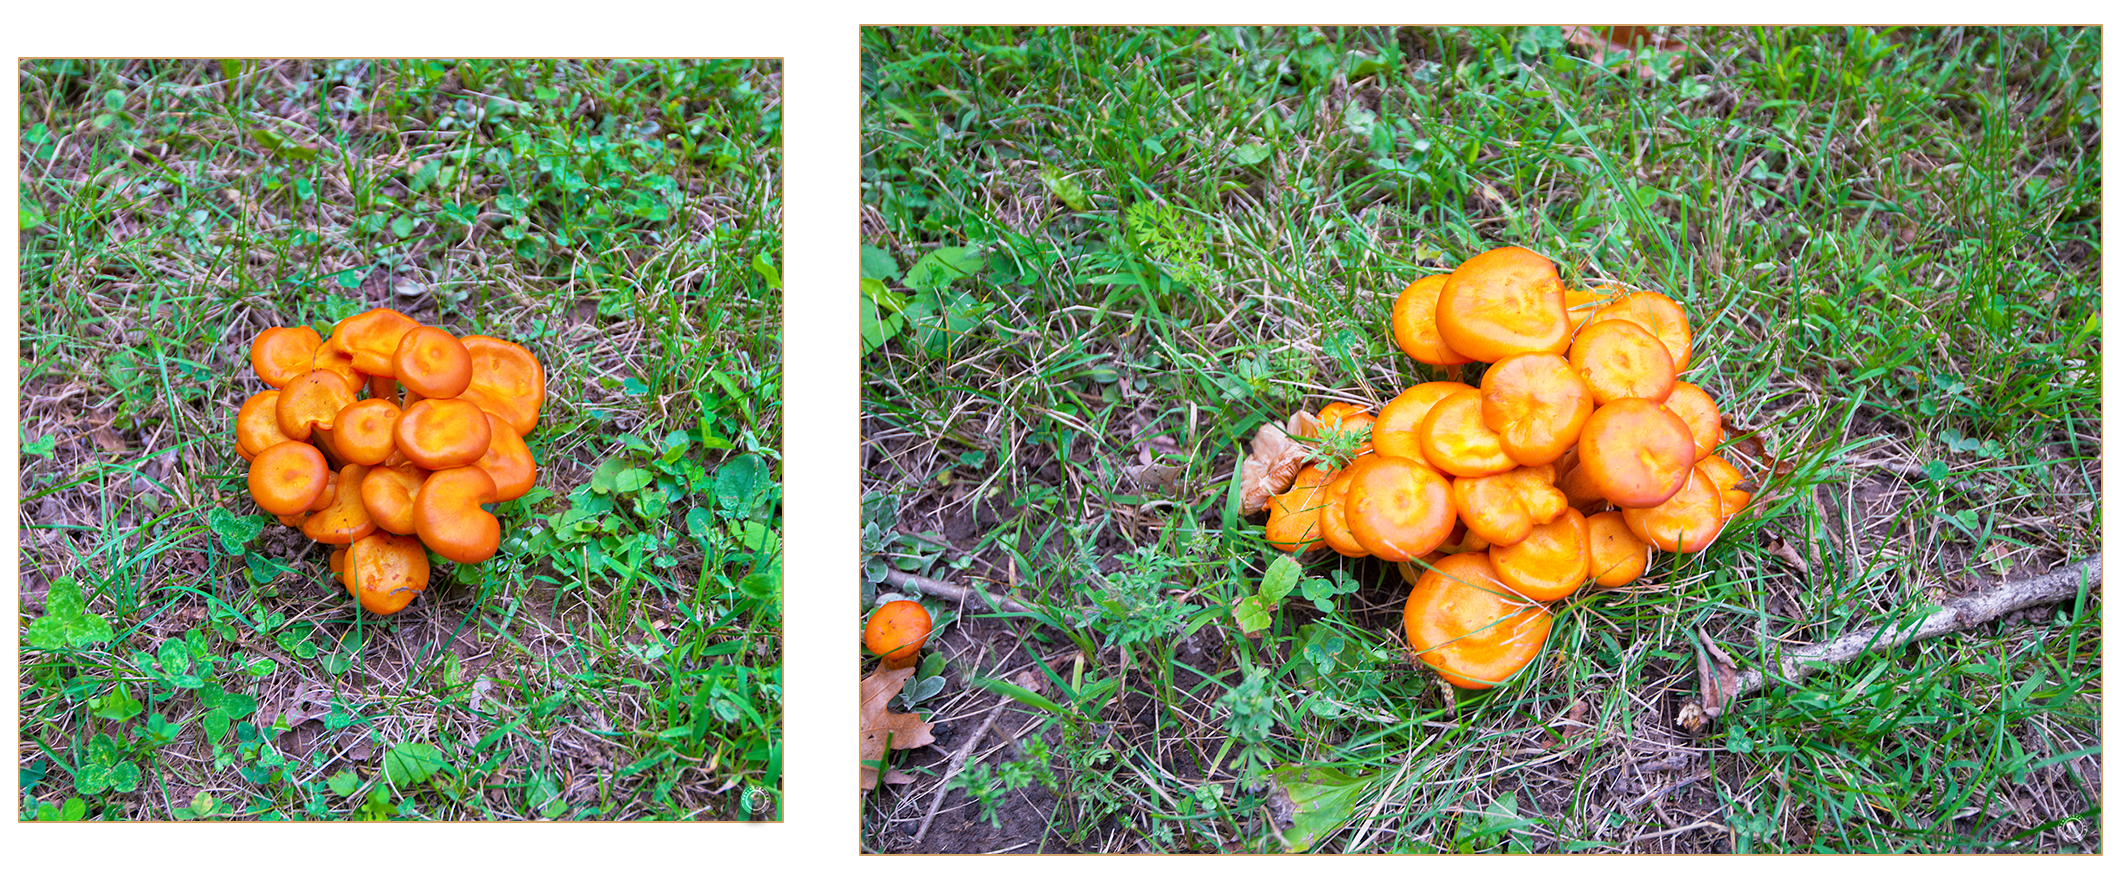 175 Wyalusing State Park Wild Orange Mushrooms